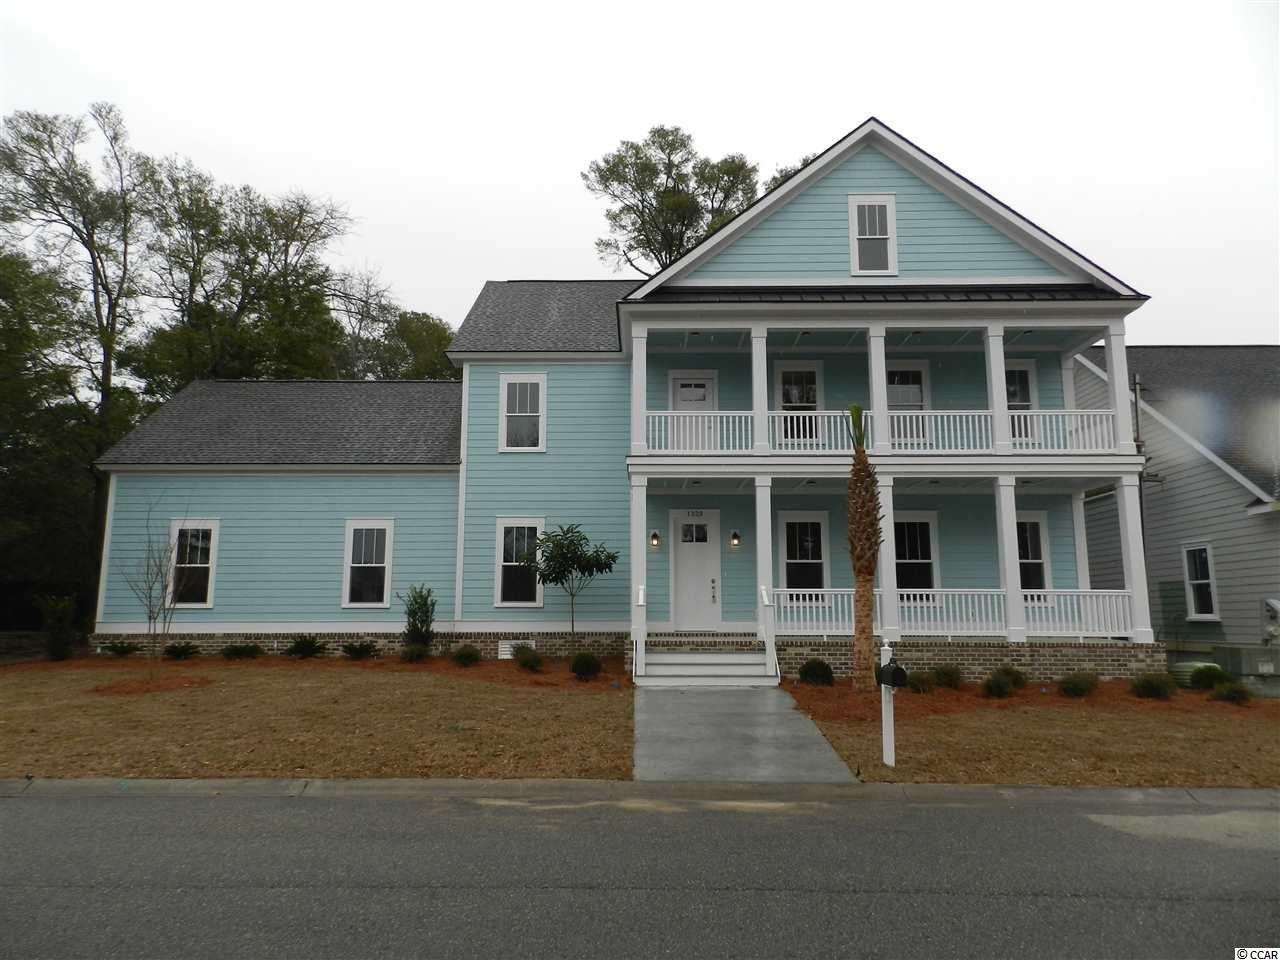 1323 Hunters Rest Dr., North Myrtle Beach, South Carolina